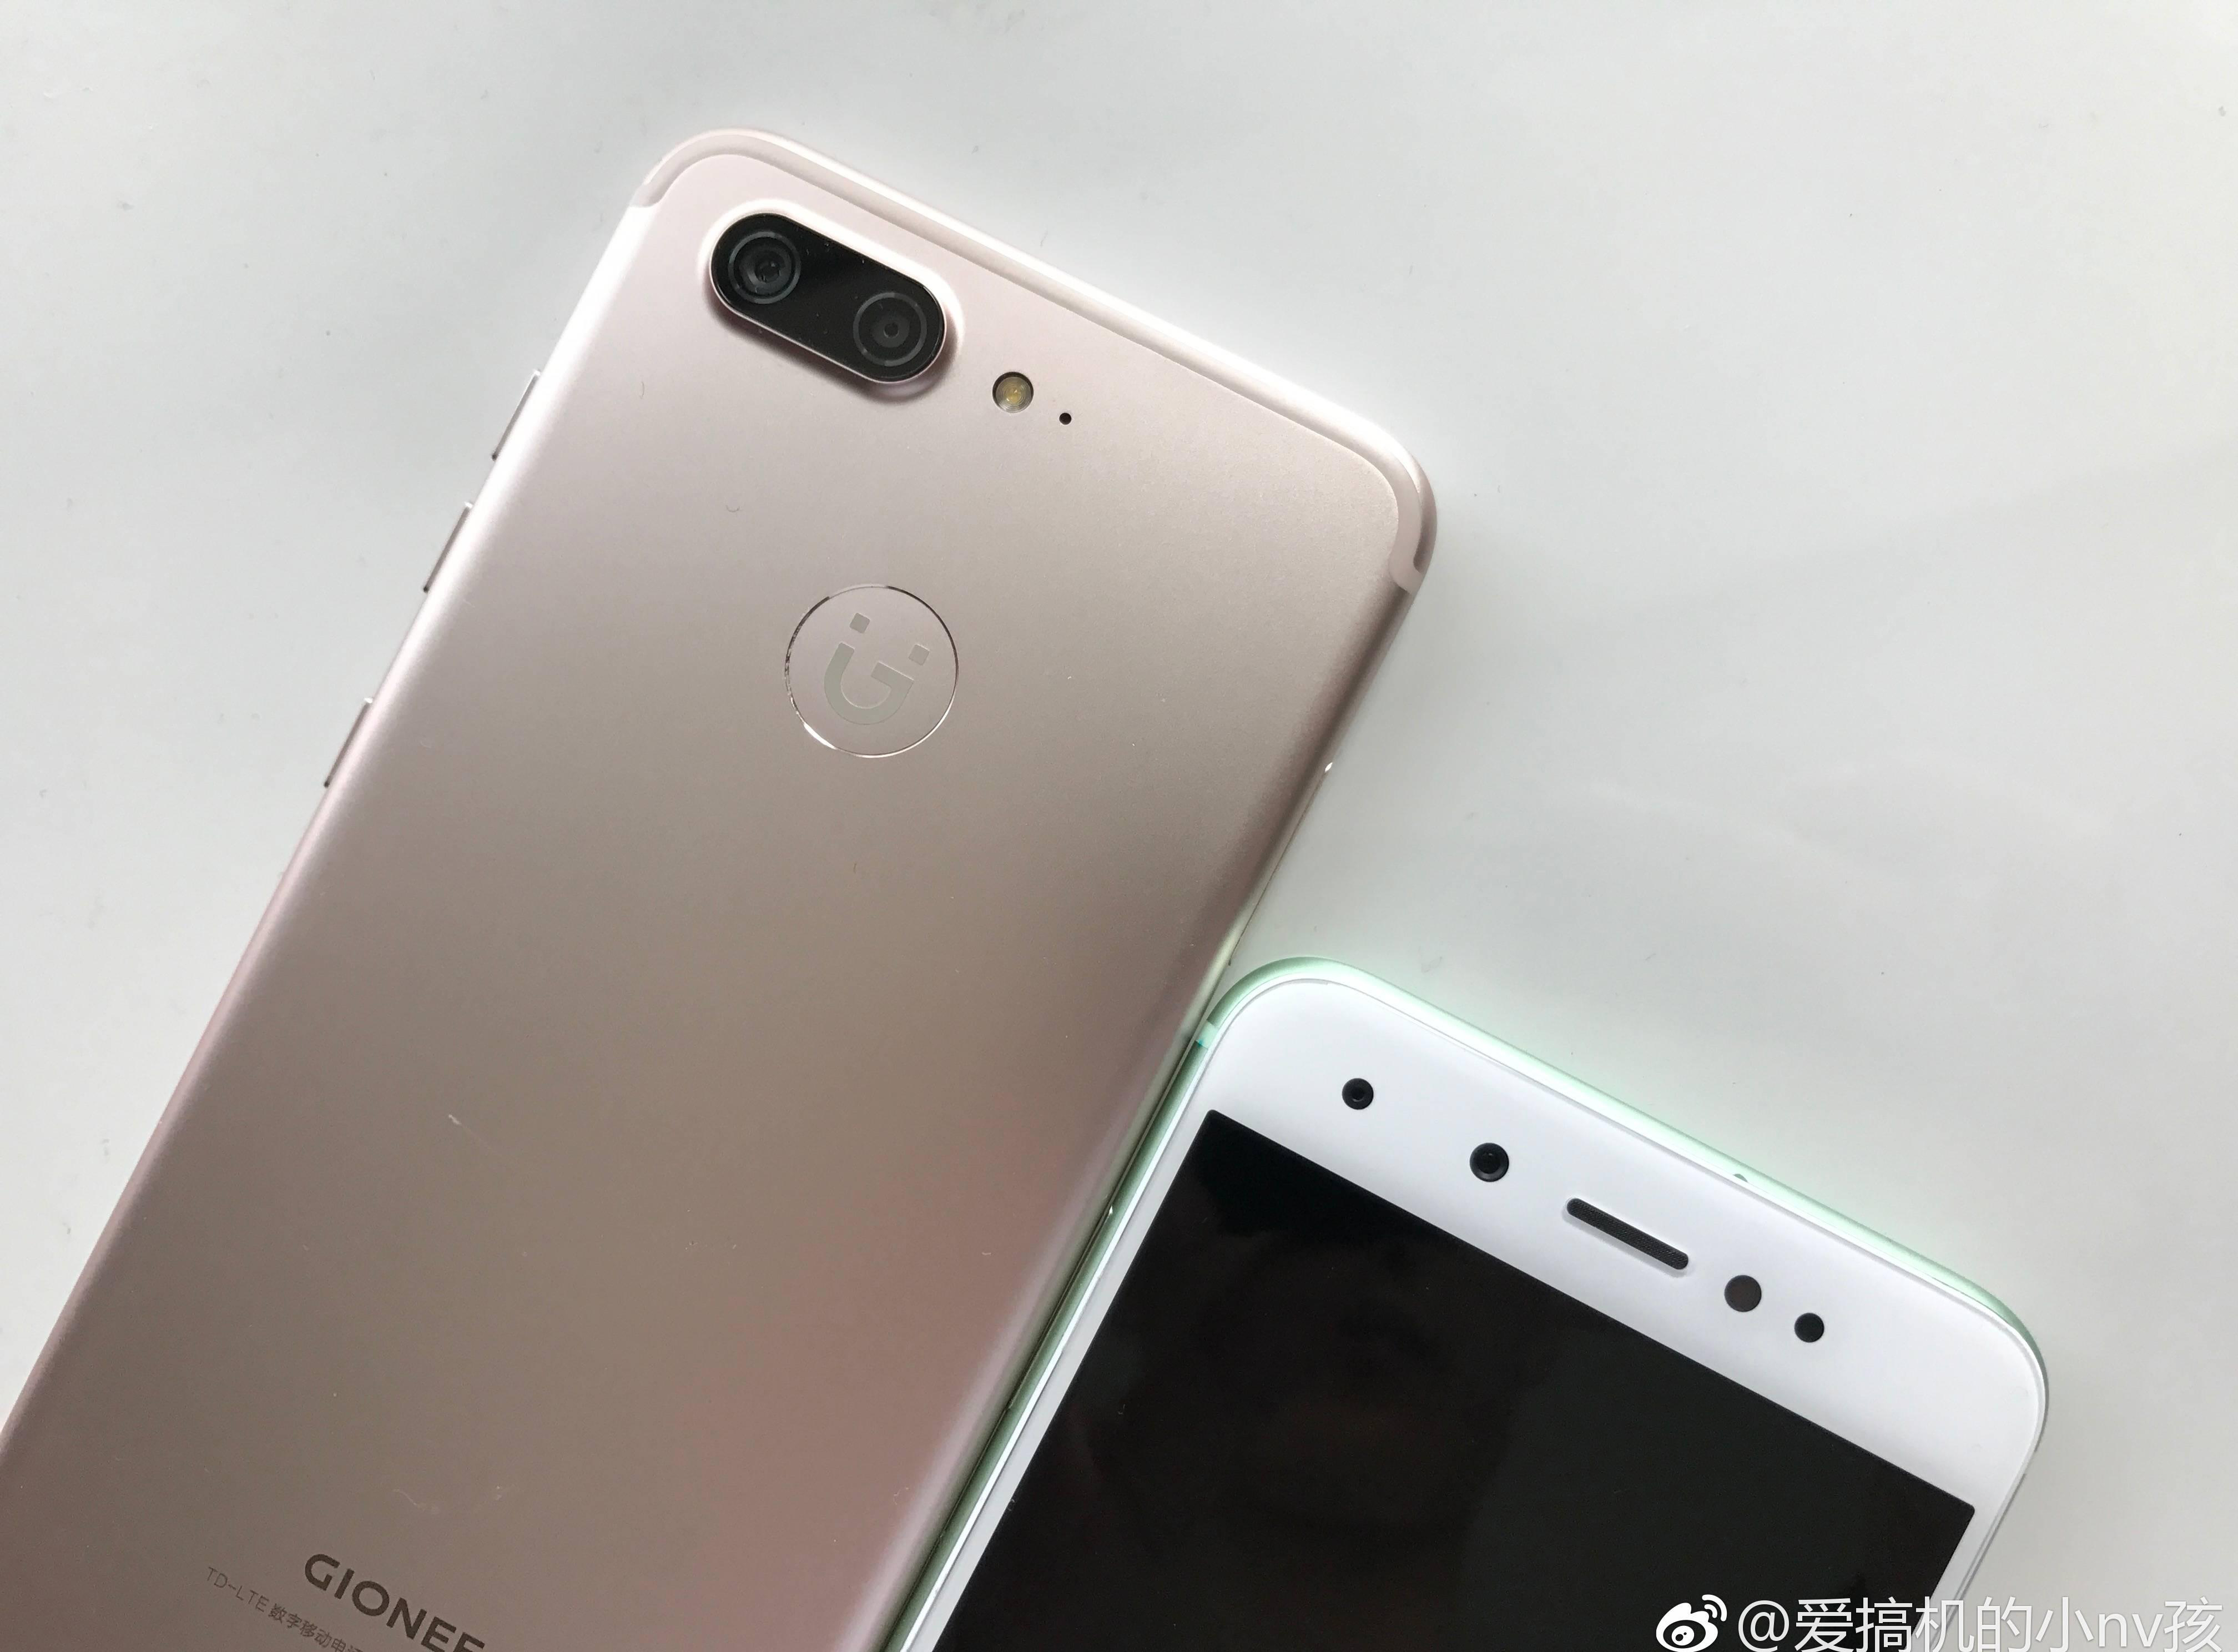 gionee s10 rumored specs and photos